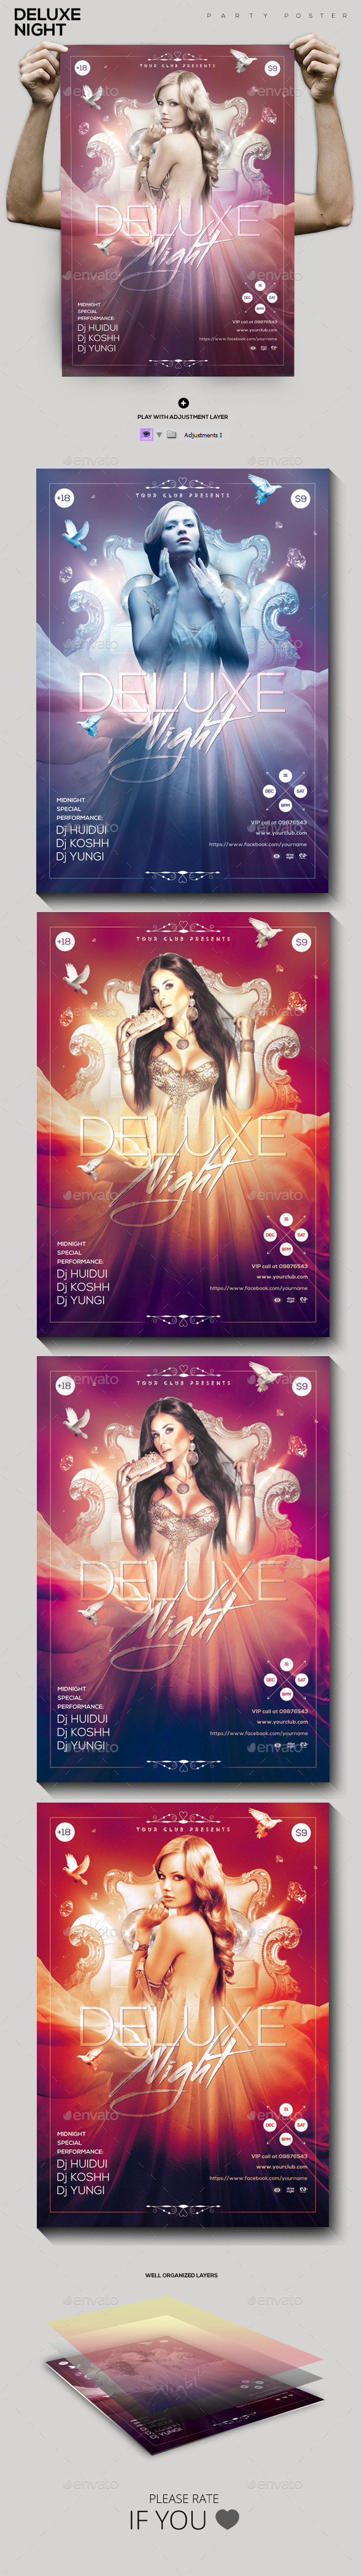 Deluxe Night Party Flyer/Poster - Clubs & Parties Events